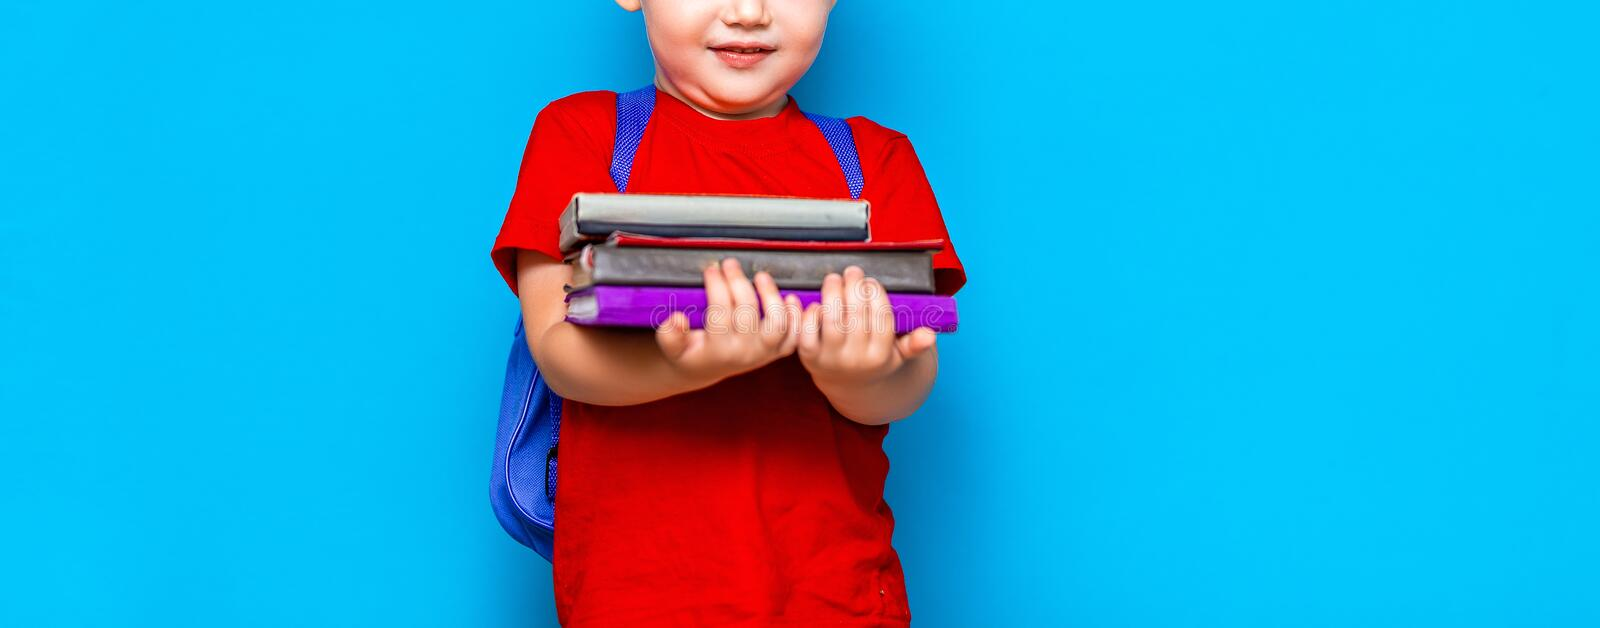 Smiling happy cute clever boy with backpack. Child with a pile of books in his hands. blue background. Ready for school. Back to. School royalty free stock photography